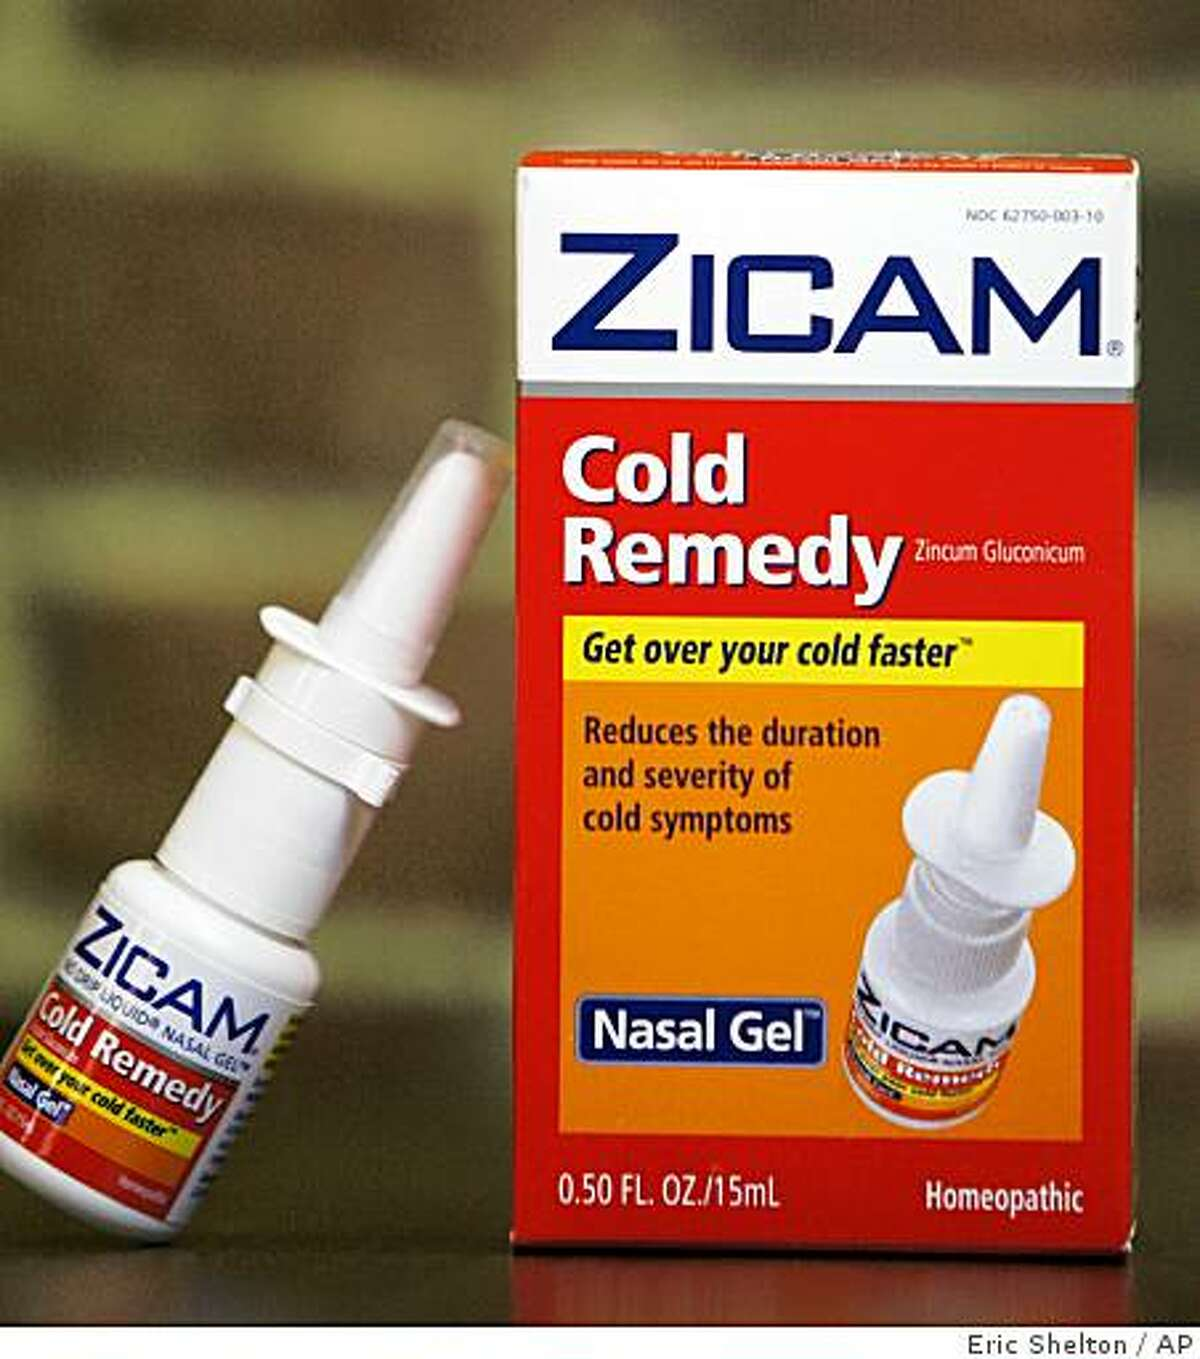 Zicam Cold Remedy nasal gel is shown in Boston Tuesday, June 16, 2009. The Food and Drug Administration on Tuesday said consumers should stop using Zicam Cold Remedy nasal gel and related products because they can permanently damage the sense of smell. (AP Photo/Eric Shelton)